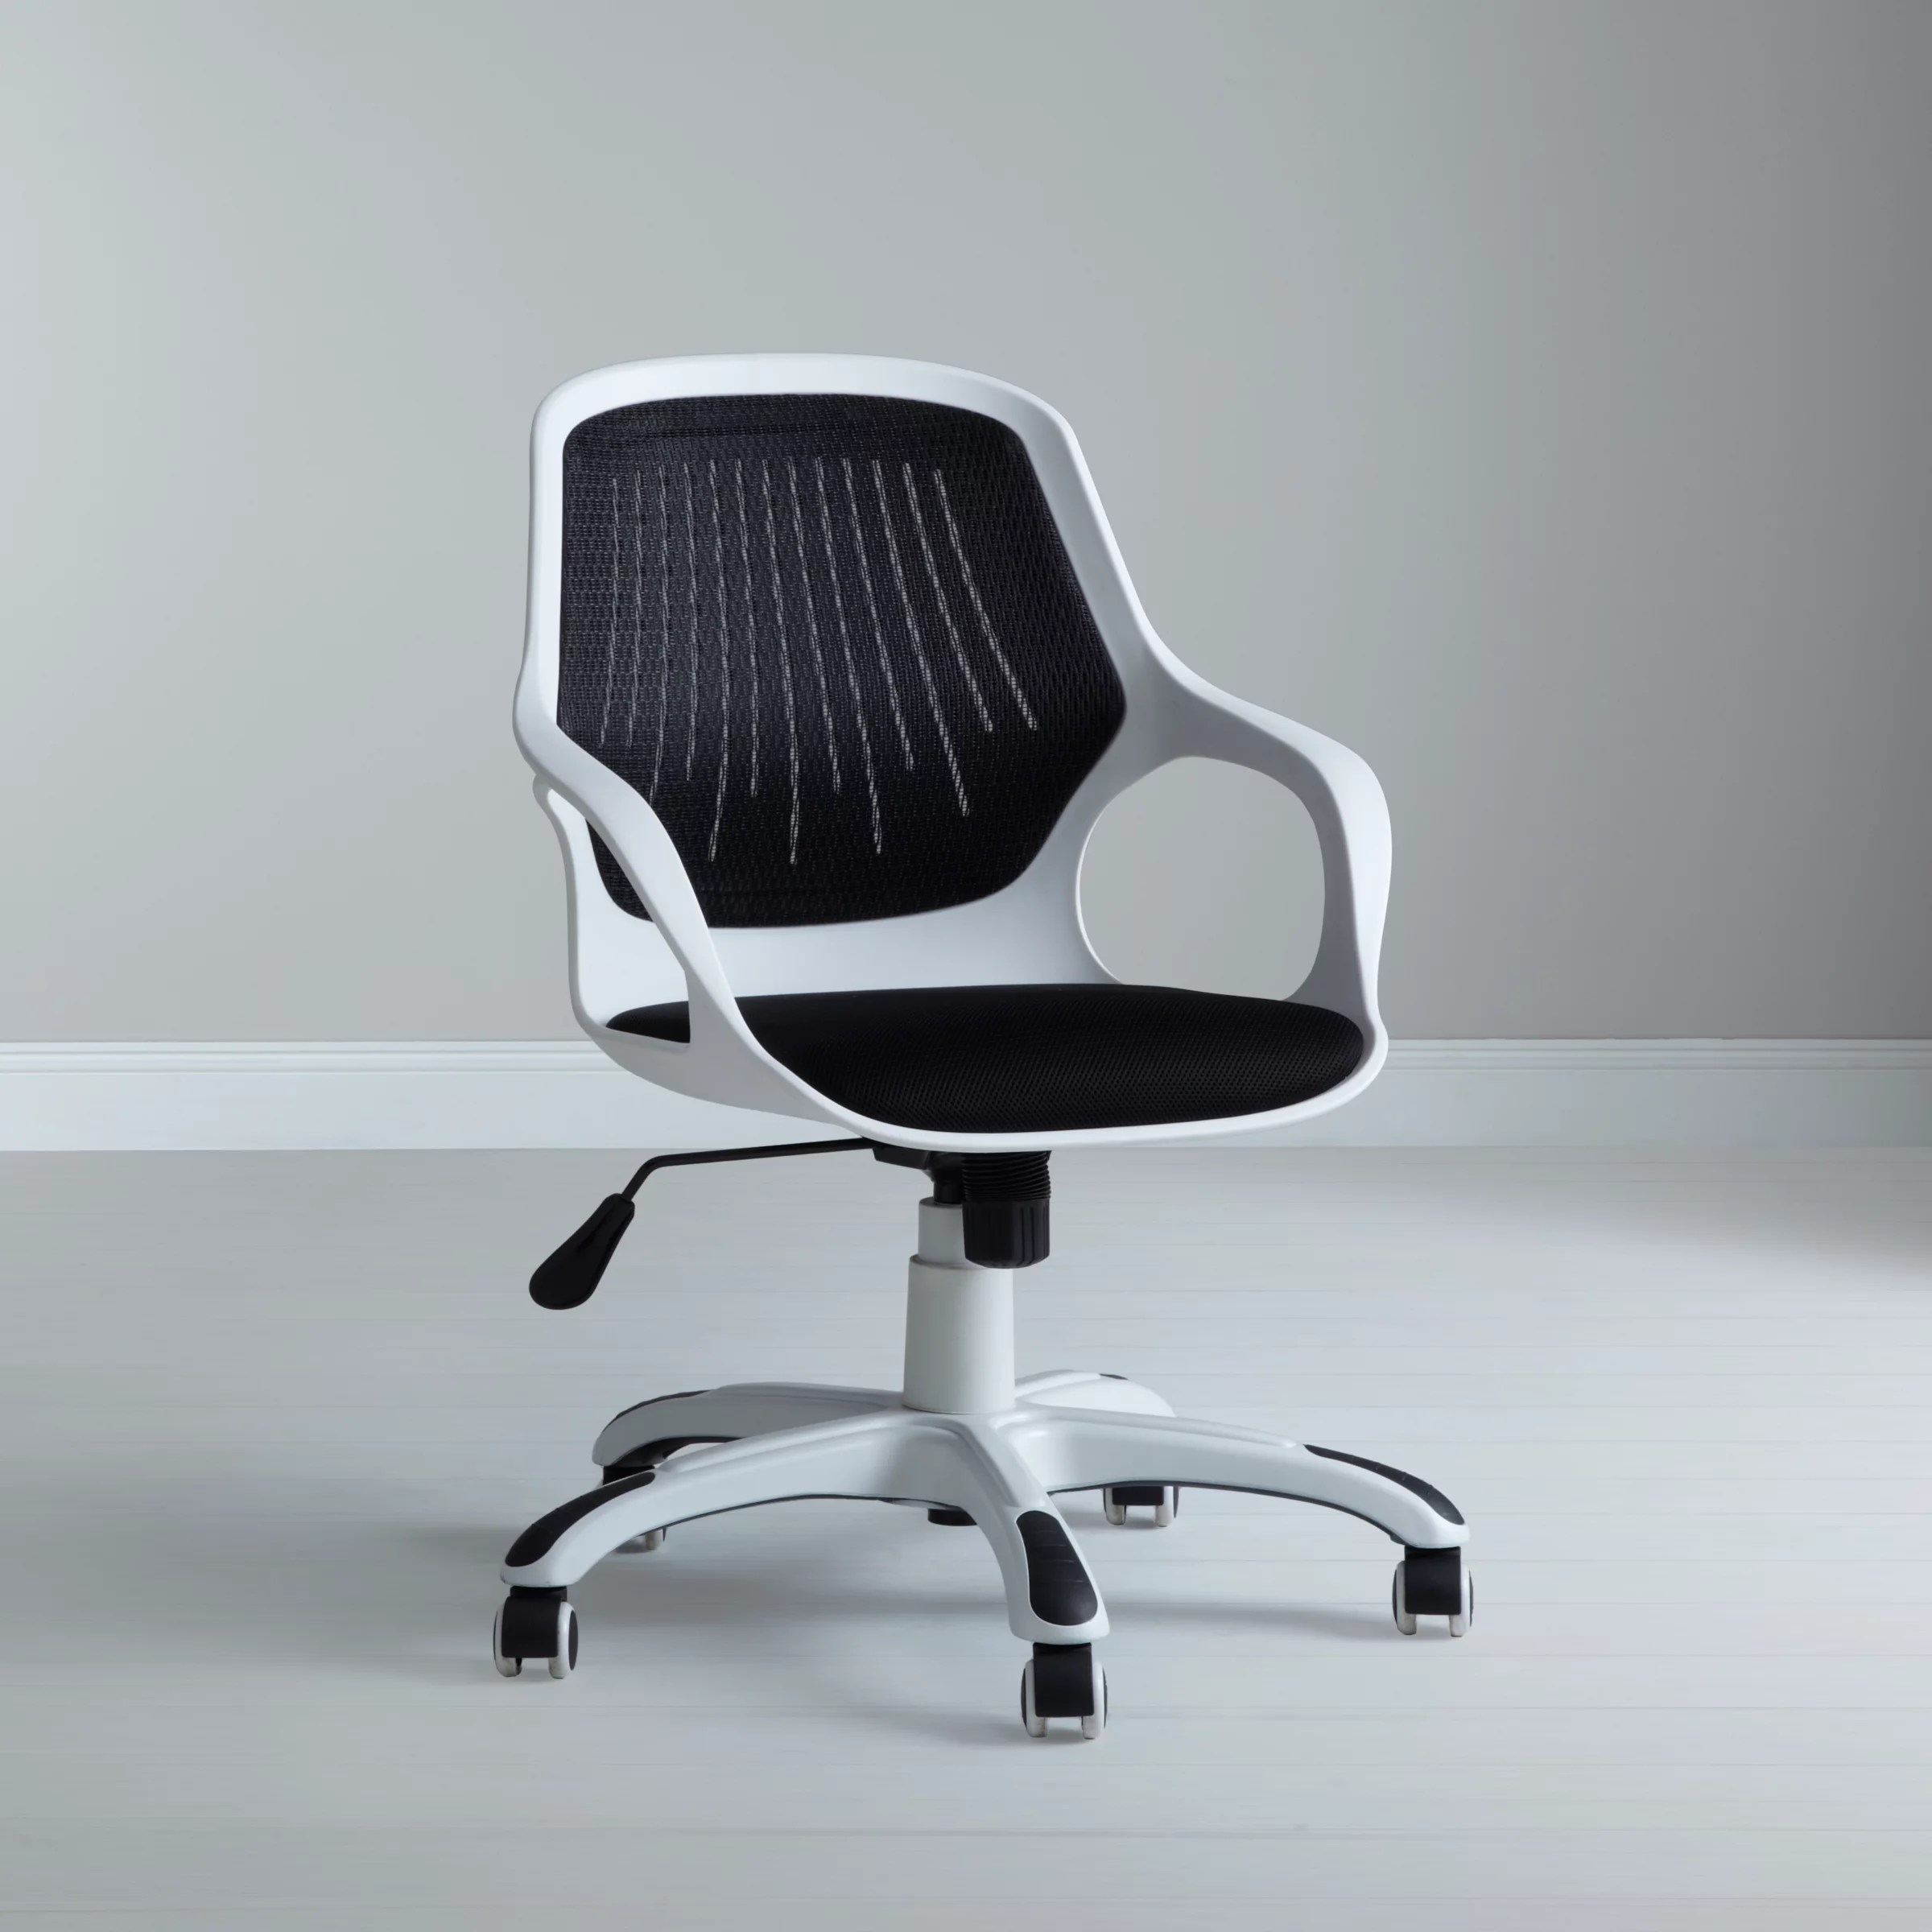 back support for office chair malaysia maternity nursing buy john lewis wade chair, black |